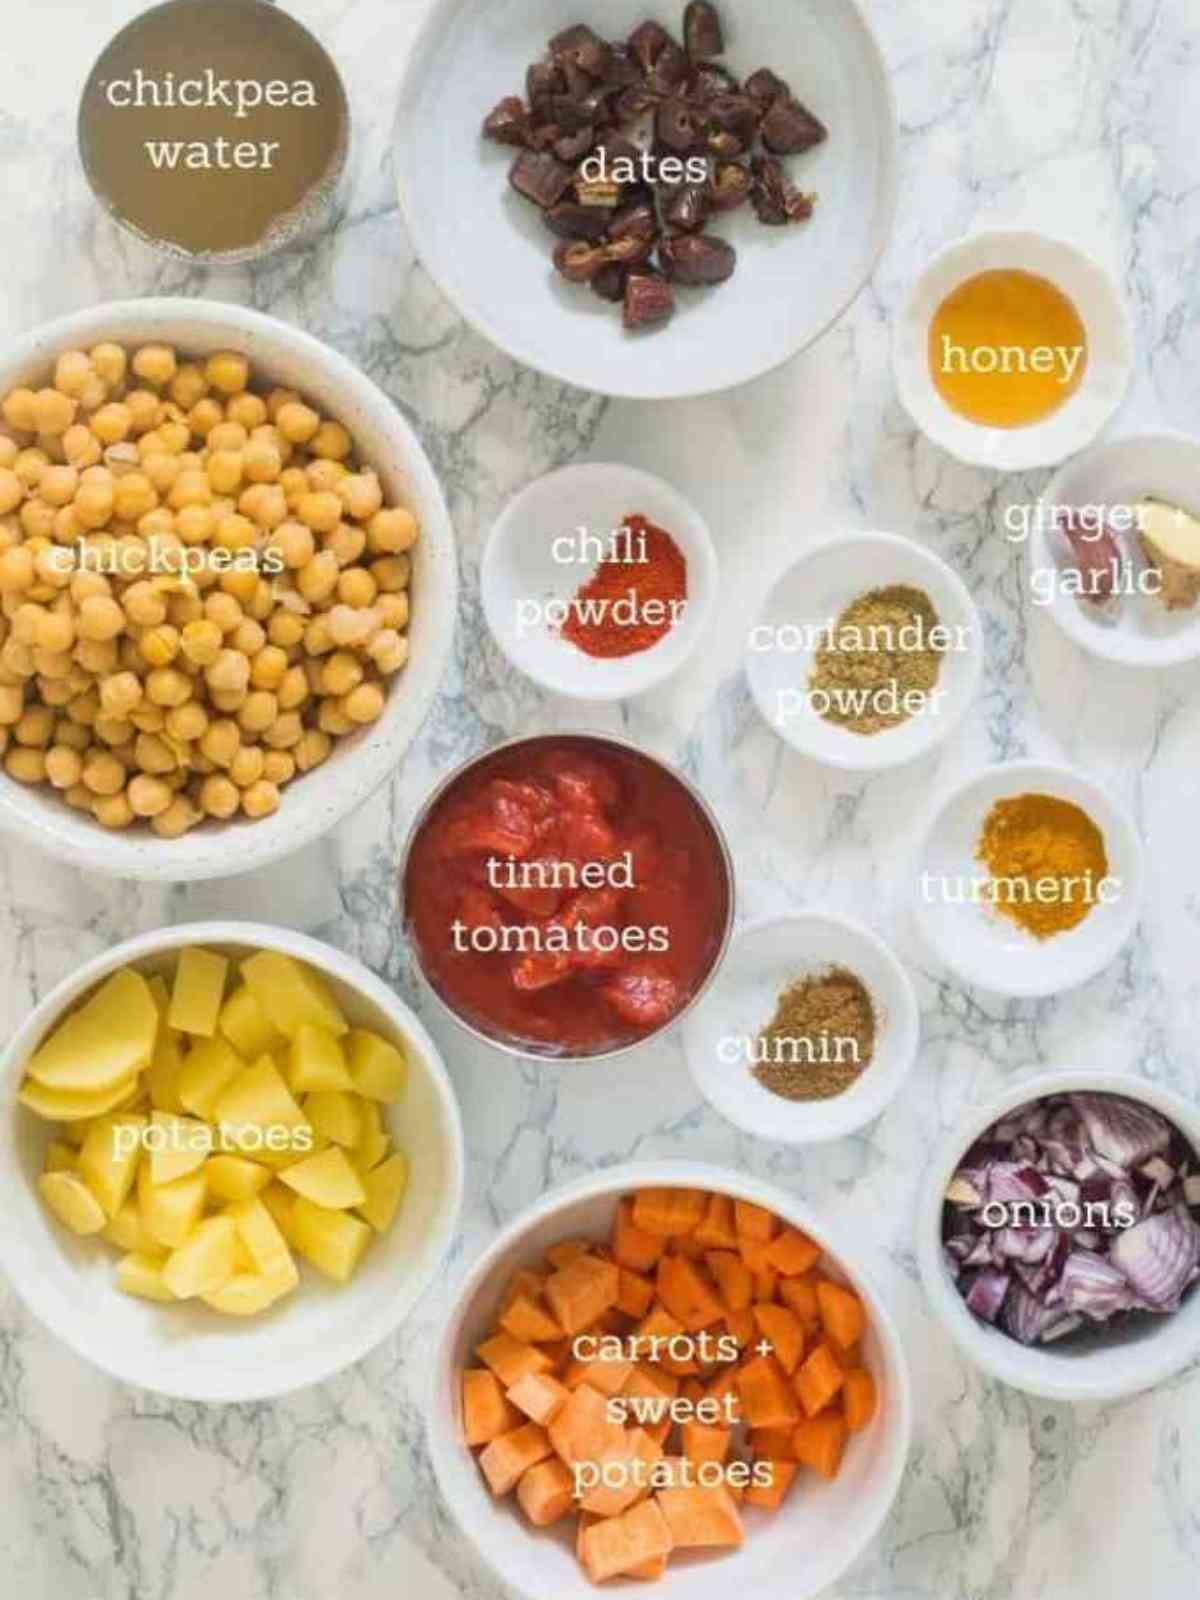 Ingredients used for chickpea tagine